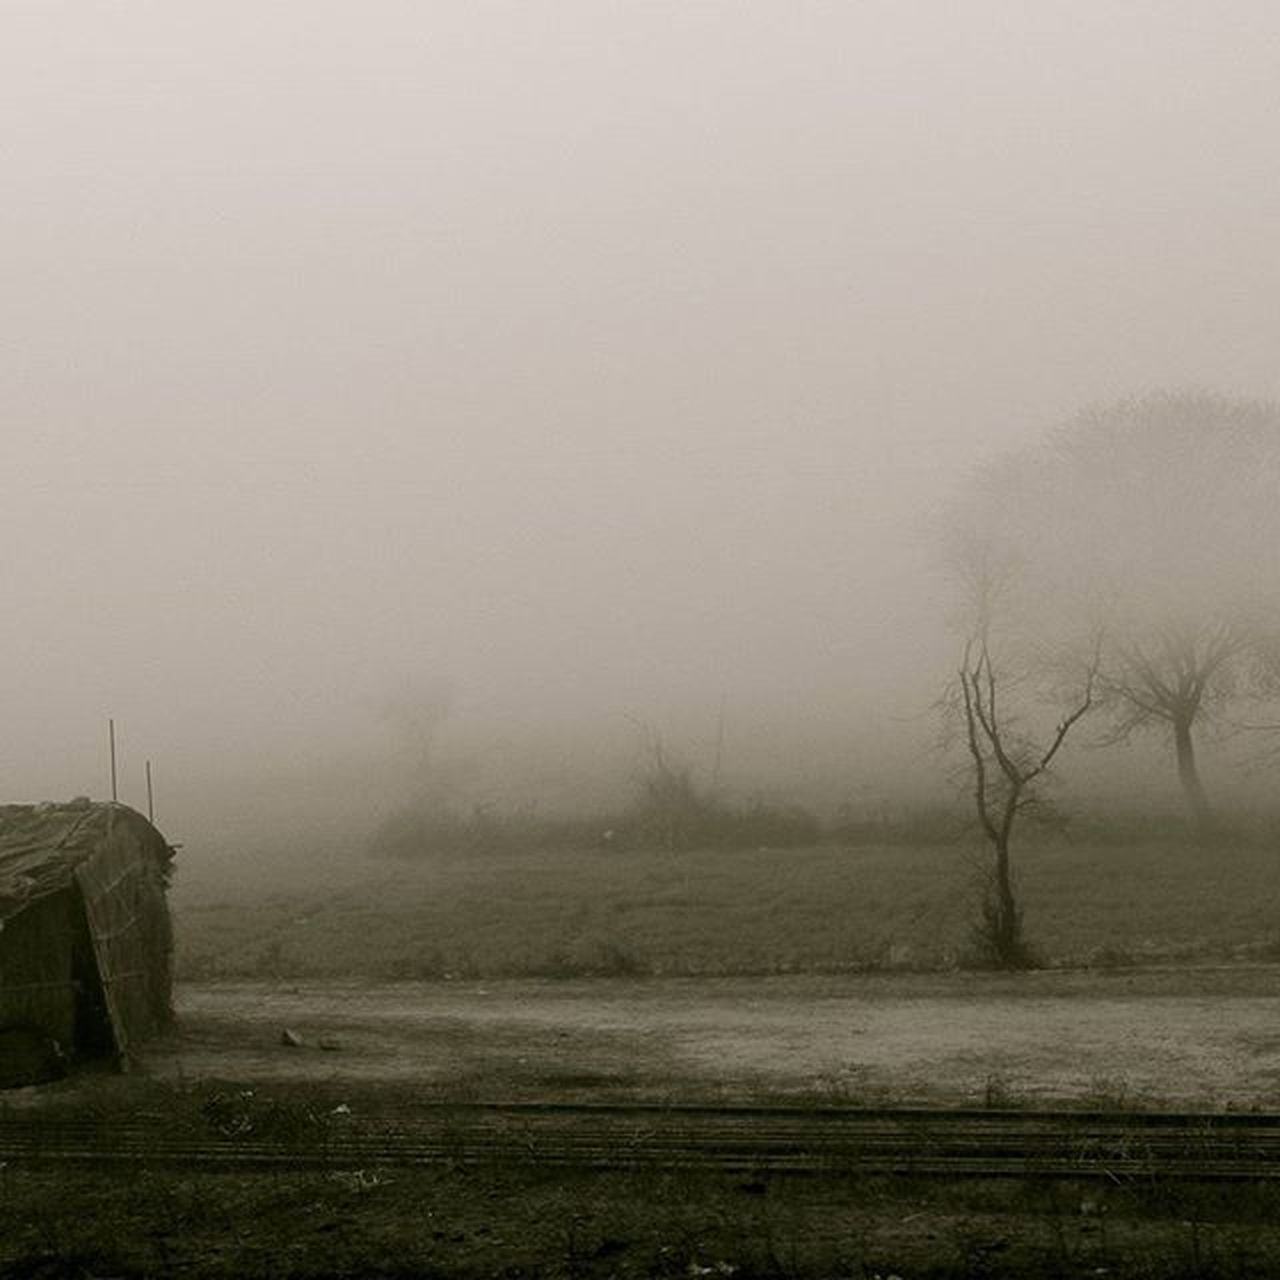 fog, landscape, tranquility, mist, no people, nature, field, beauty in nature, outdoors, hazy, scenics, spooky, winter, day, grass, cold temperature, tree, sky